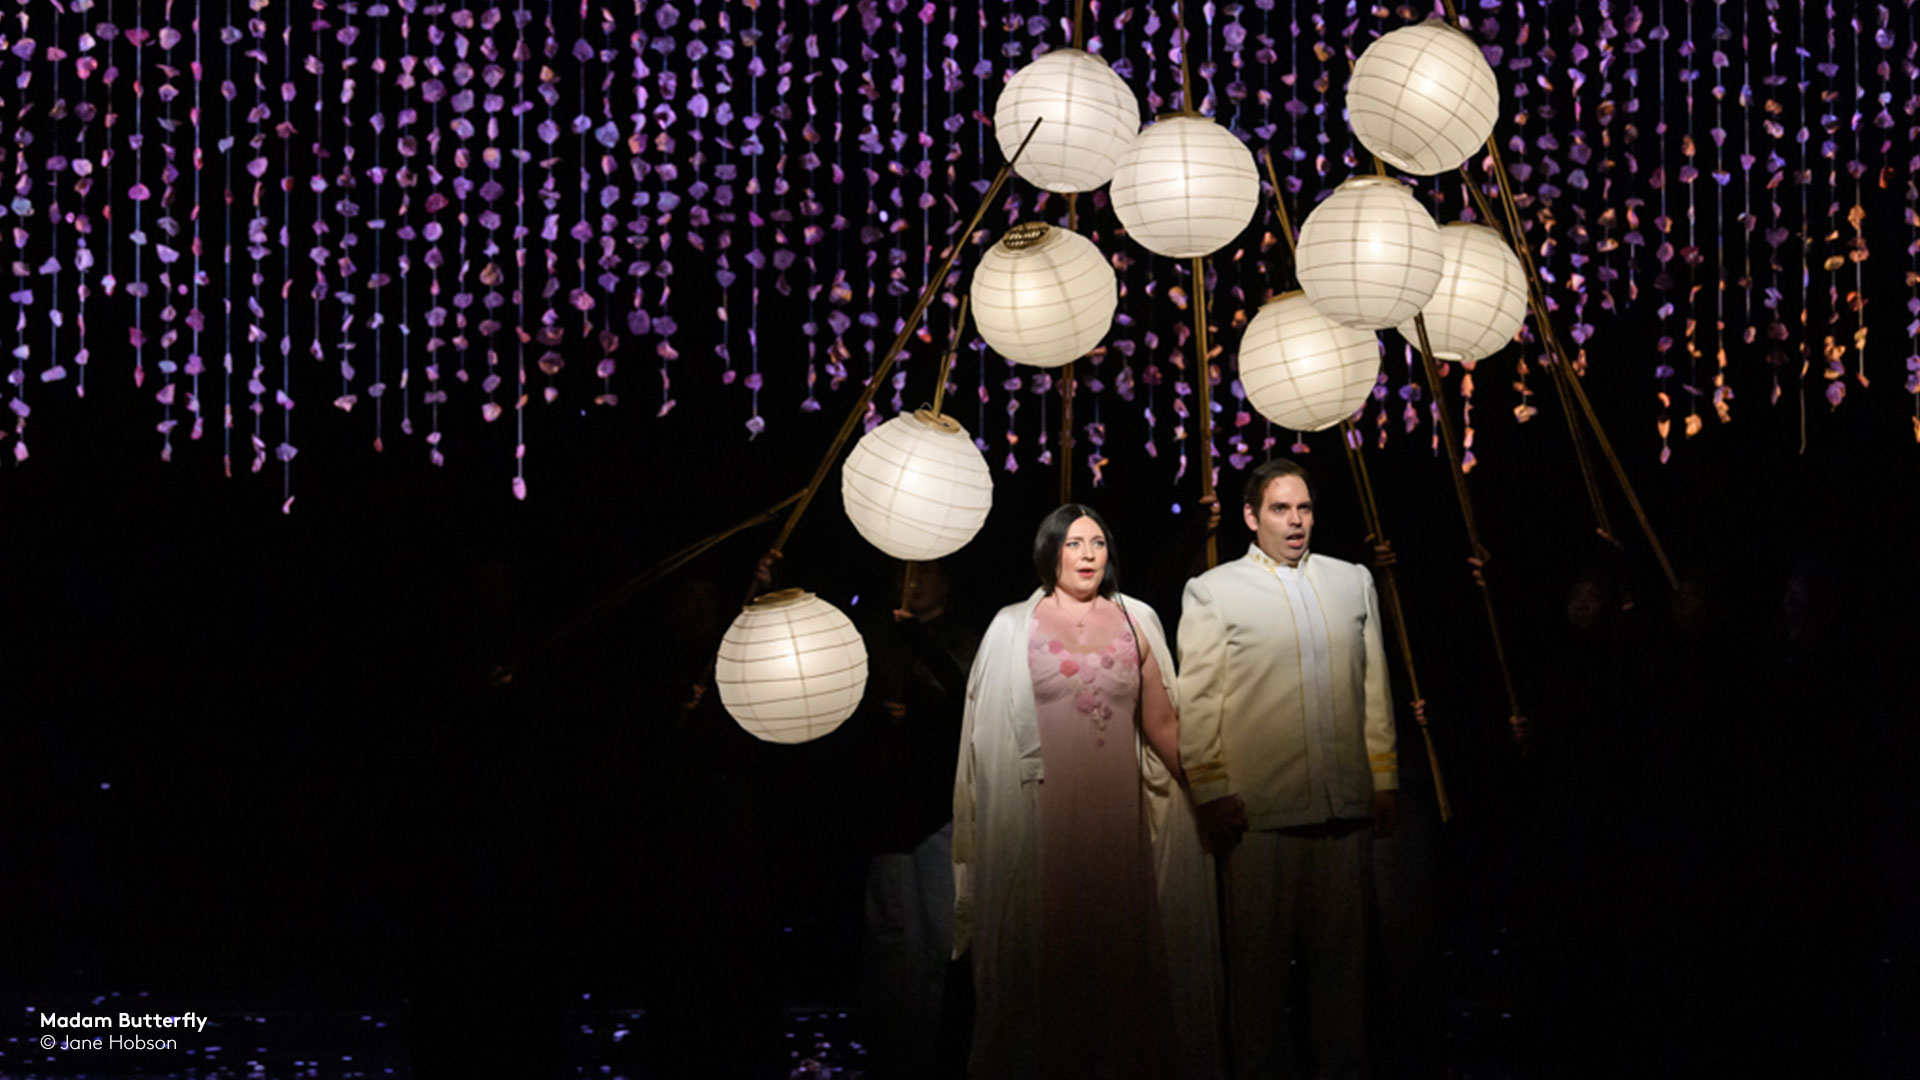 still from madam butterfly with man and woman surrounded by white lamps